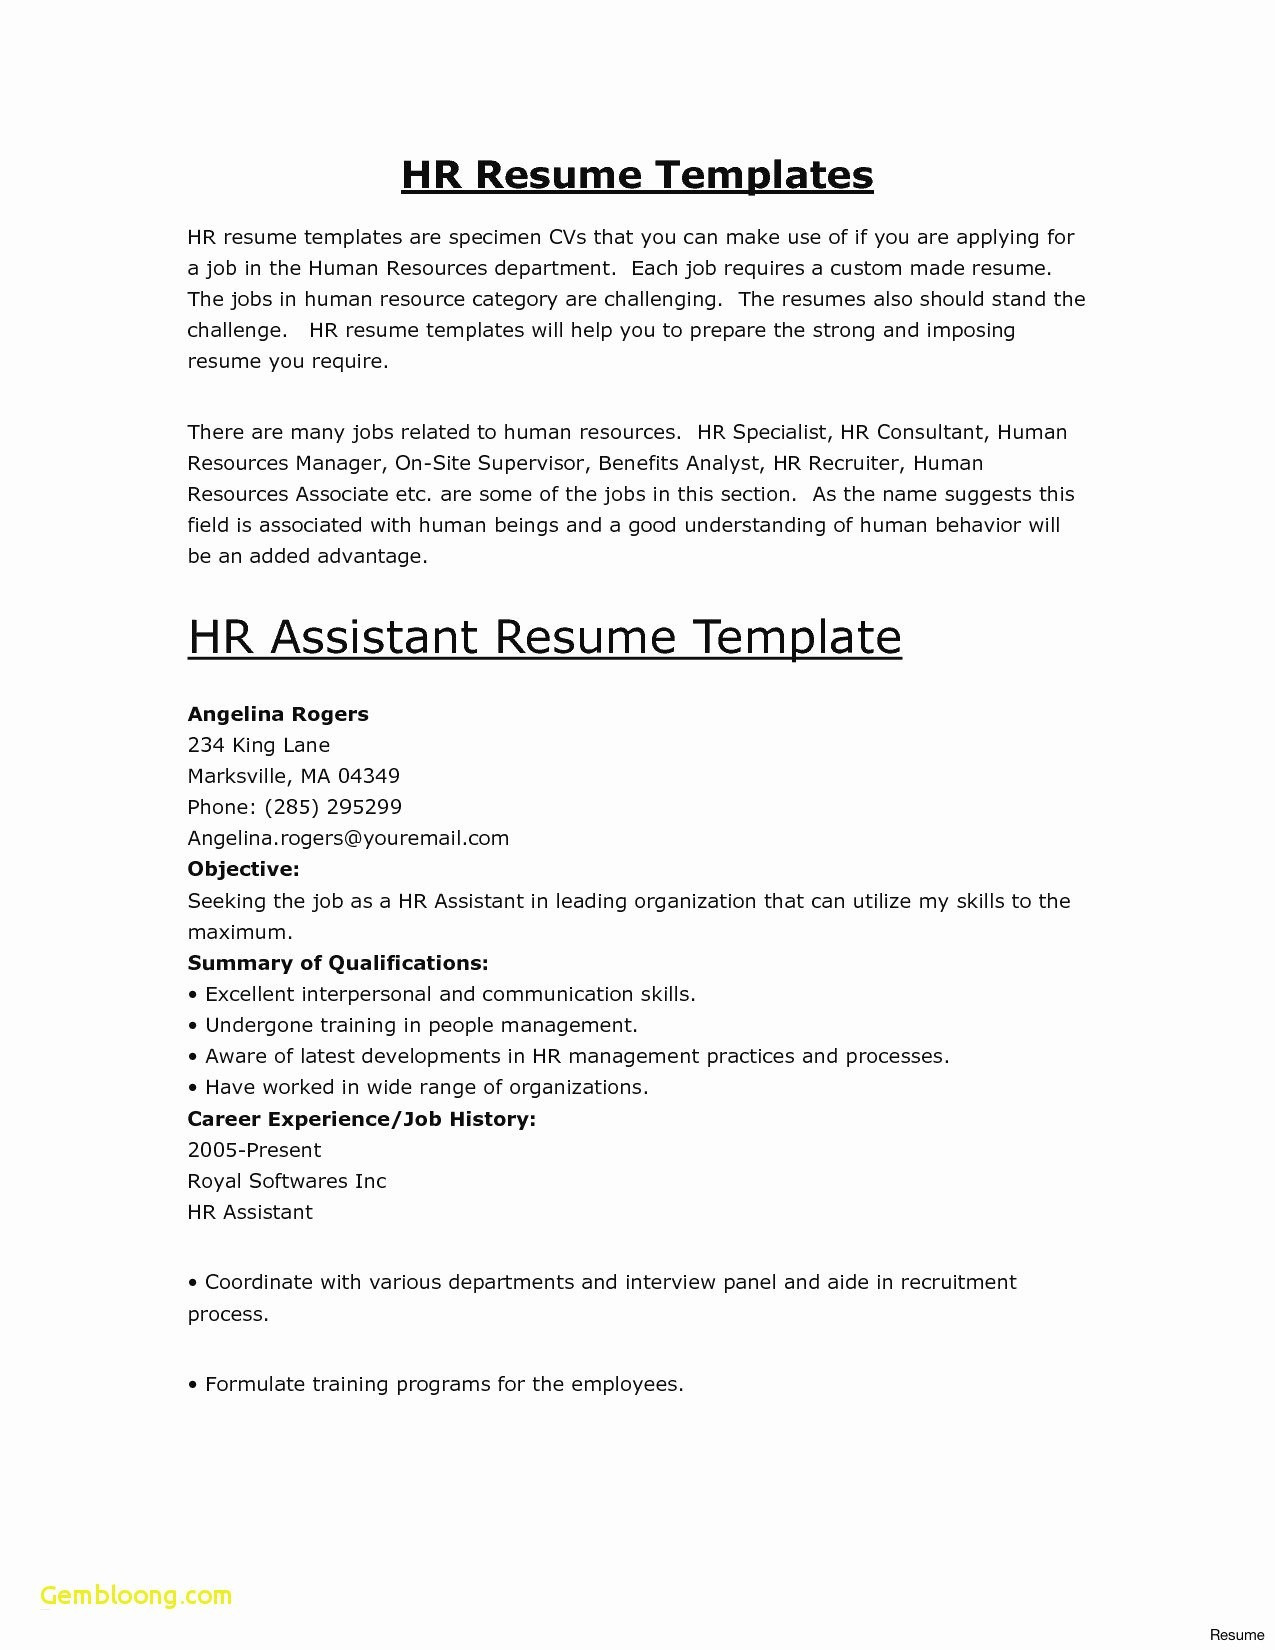 14 Good Resume Templates Collection